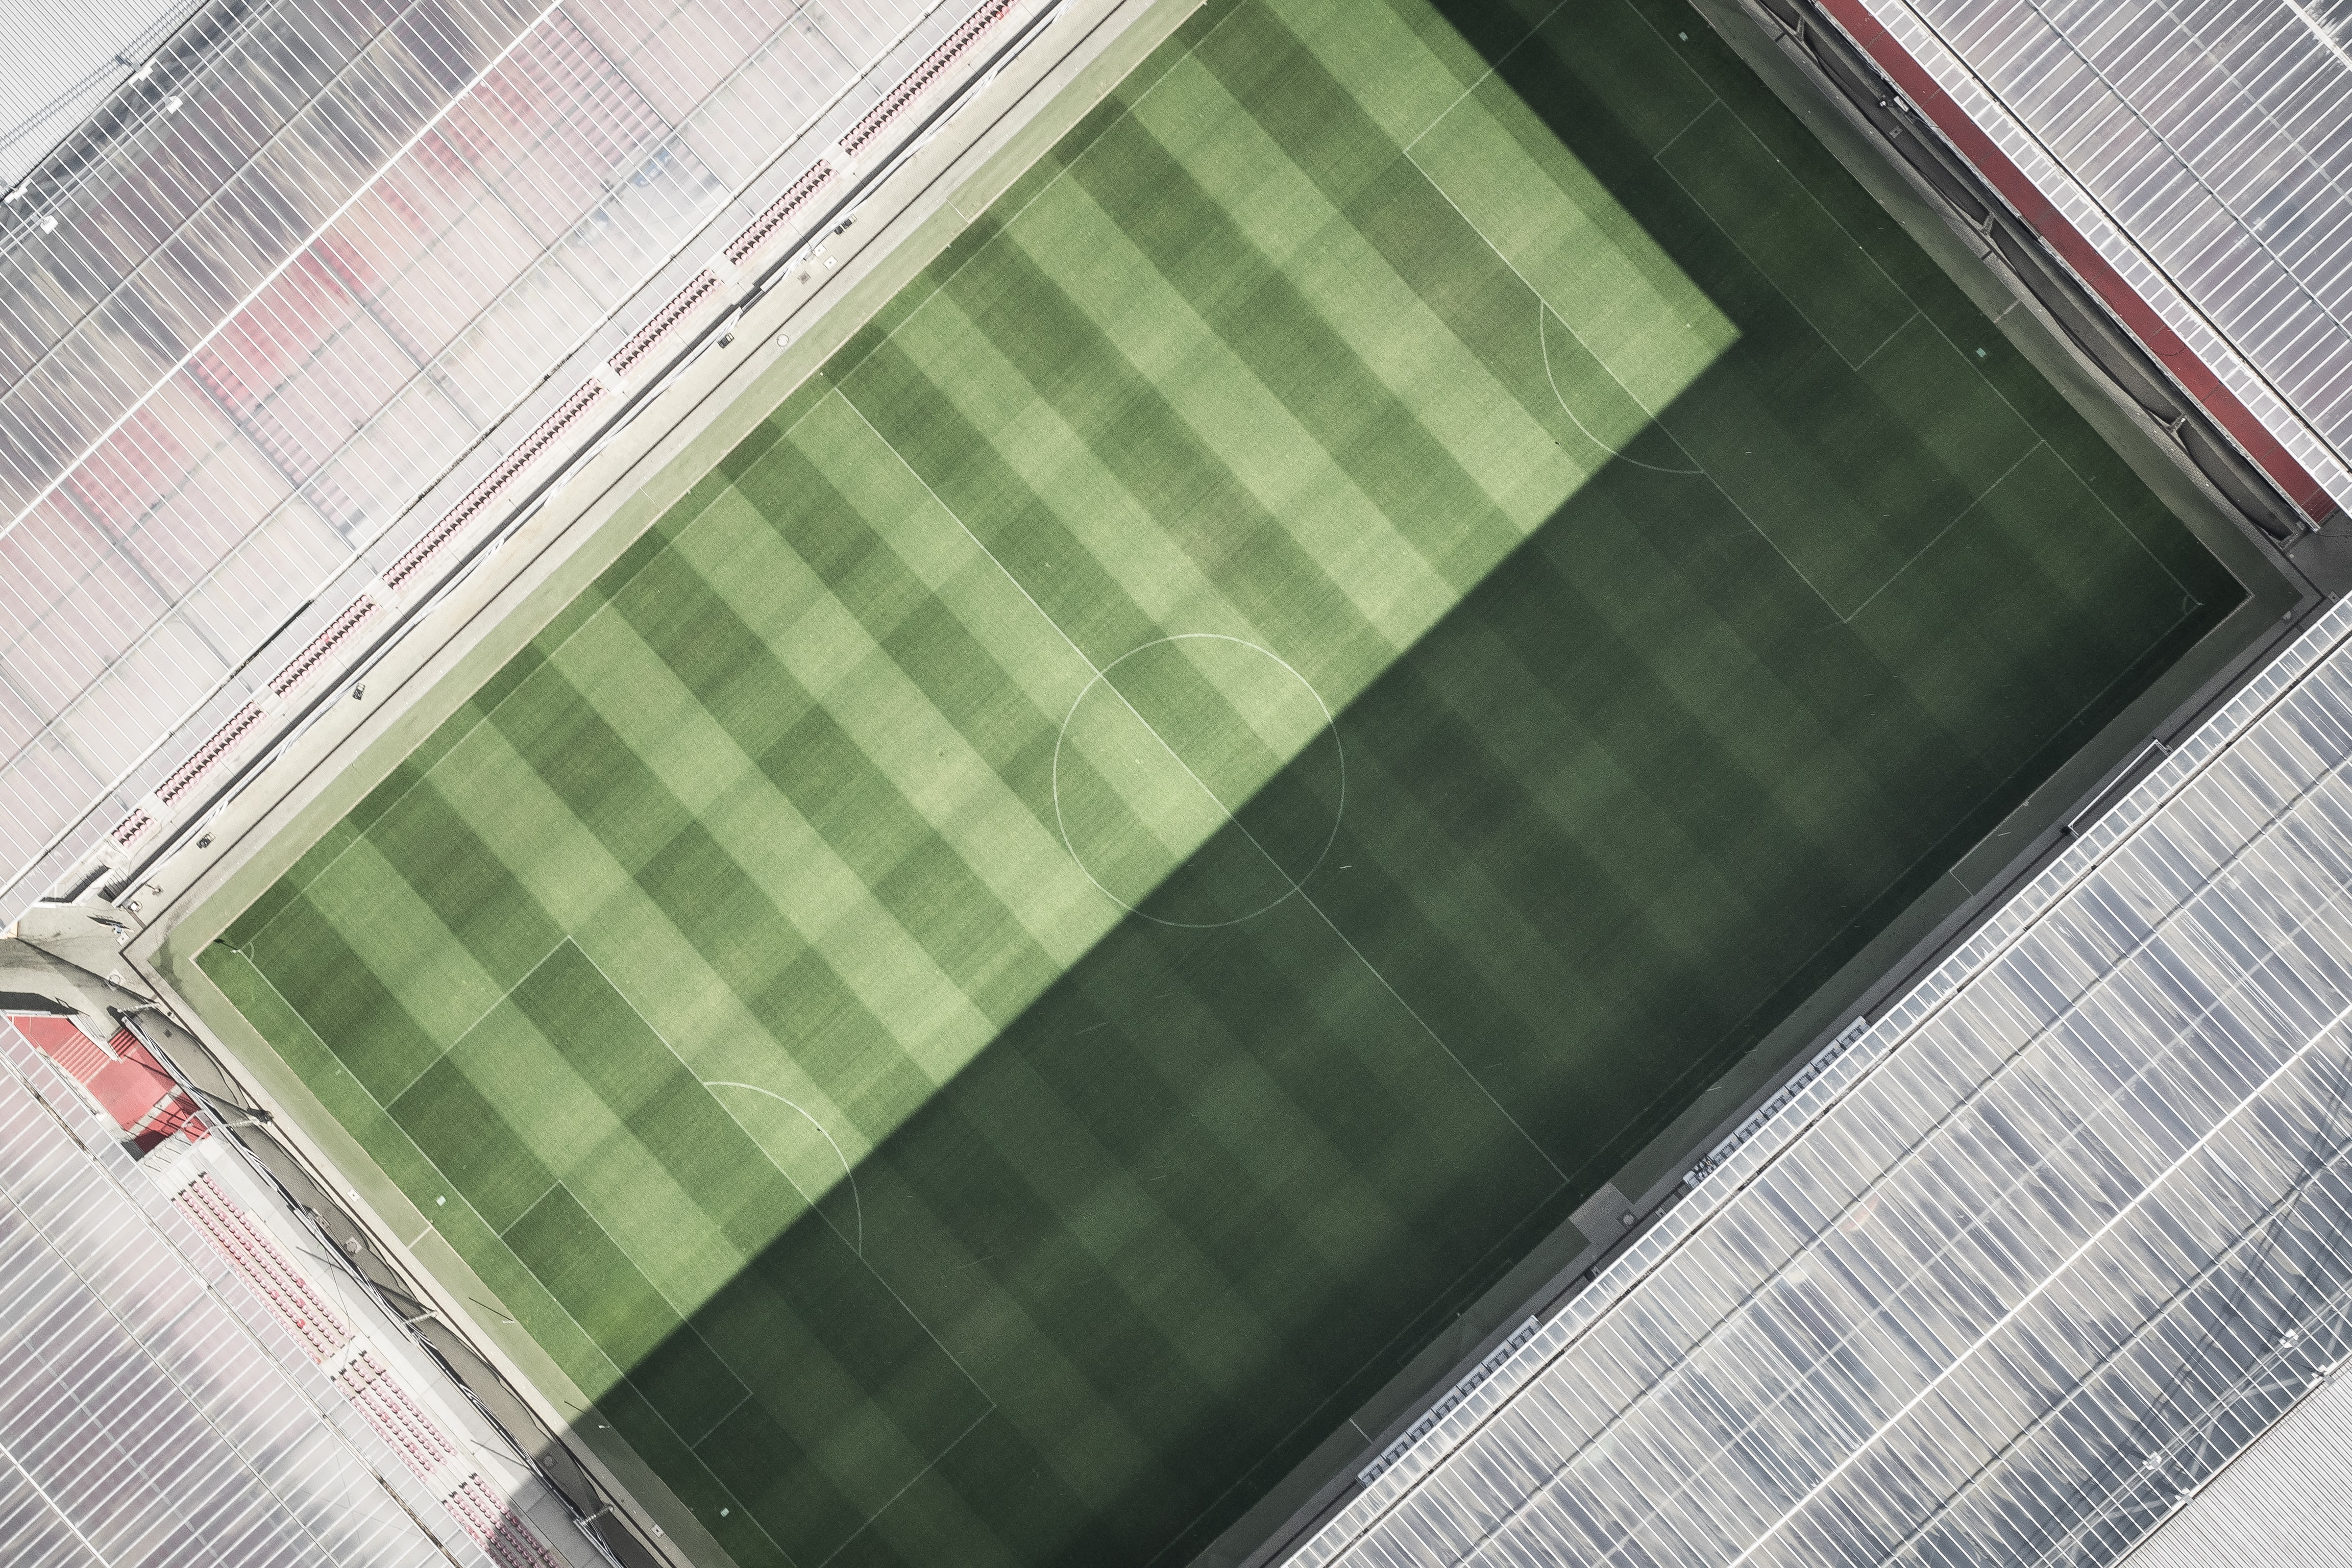 Drone aerial view of a soccer stadium pitch and roof.